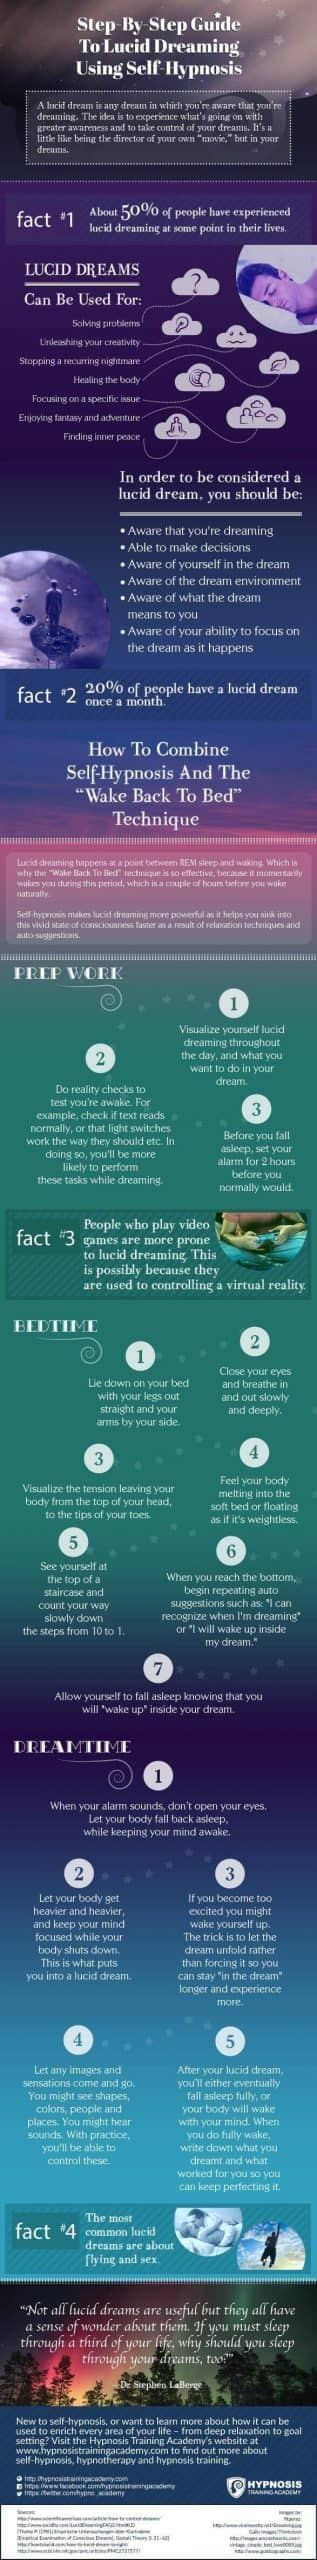 INFOGRAPHIC: Guide To Lucid Dreaming Using Hypnosis